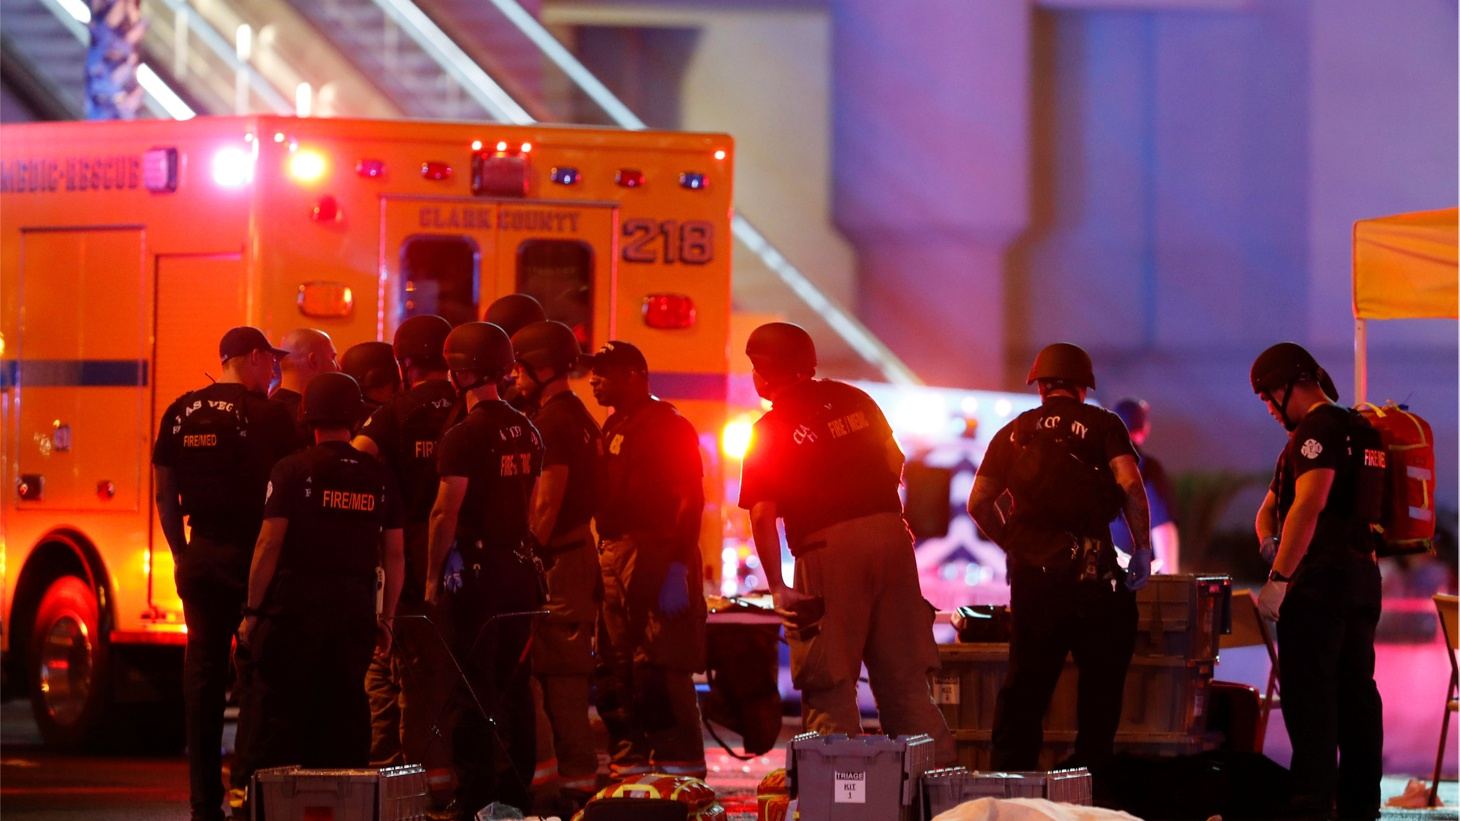 Sunday's shooting in Las Vegas is the worst mass shooting in modern U.S. history. At least 58 people were killed and more than 500 injured. The death toll climbs.